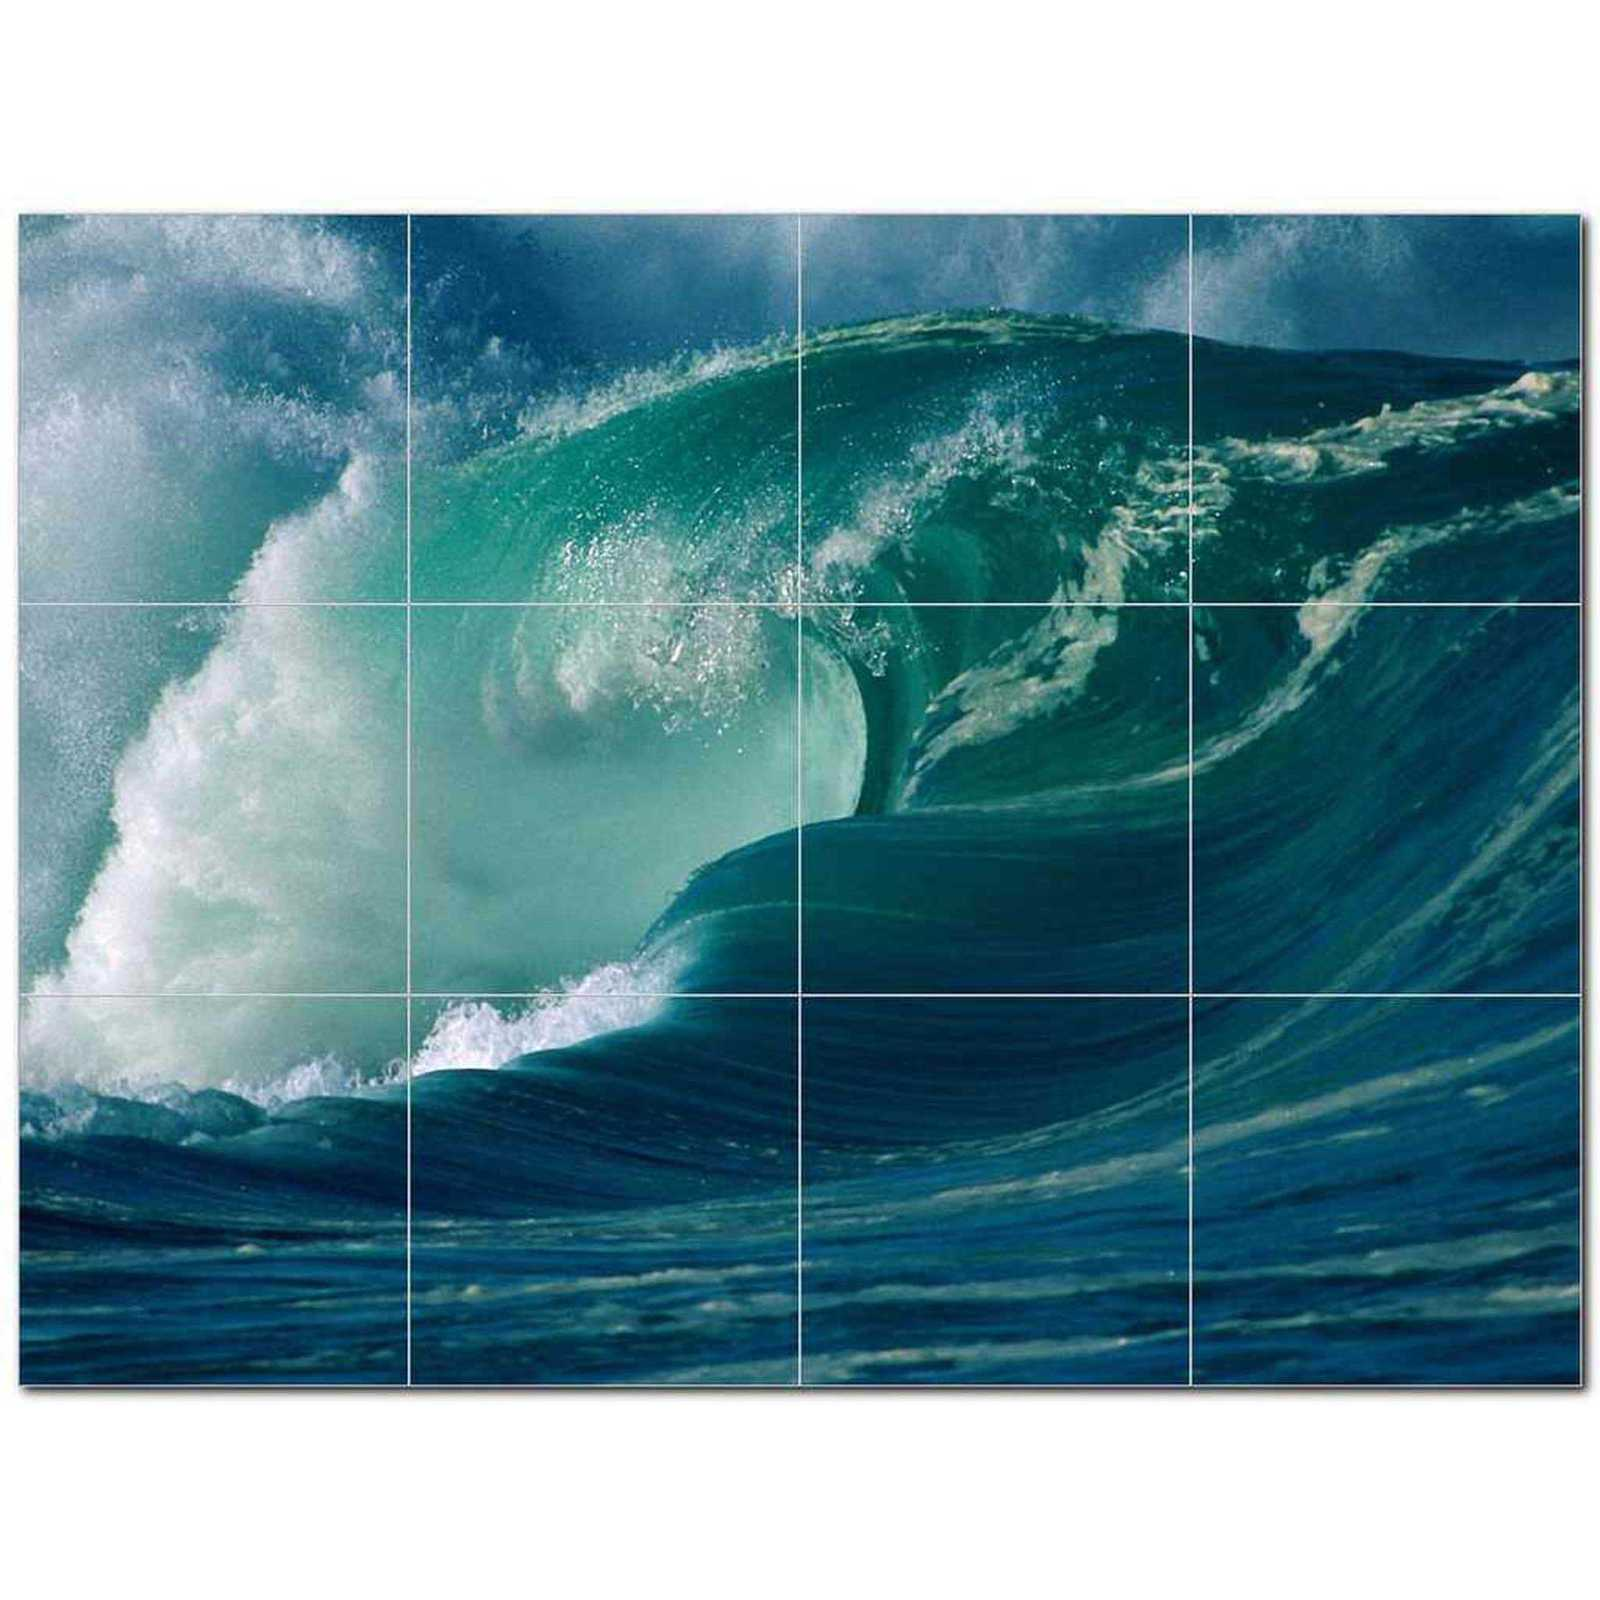 Primary image for Waves Photo Ceramic Tile Mural Kitchen Backsplash Bathroom Shower BAZ406320